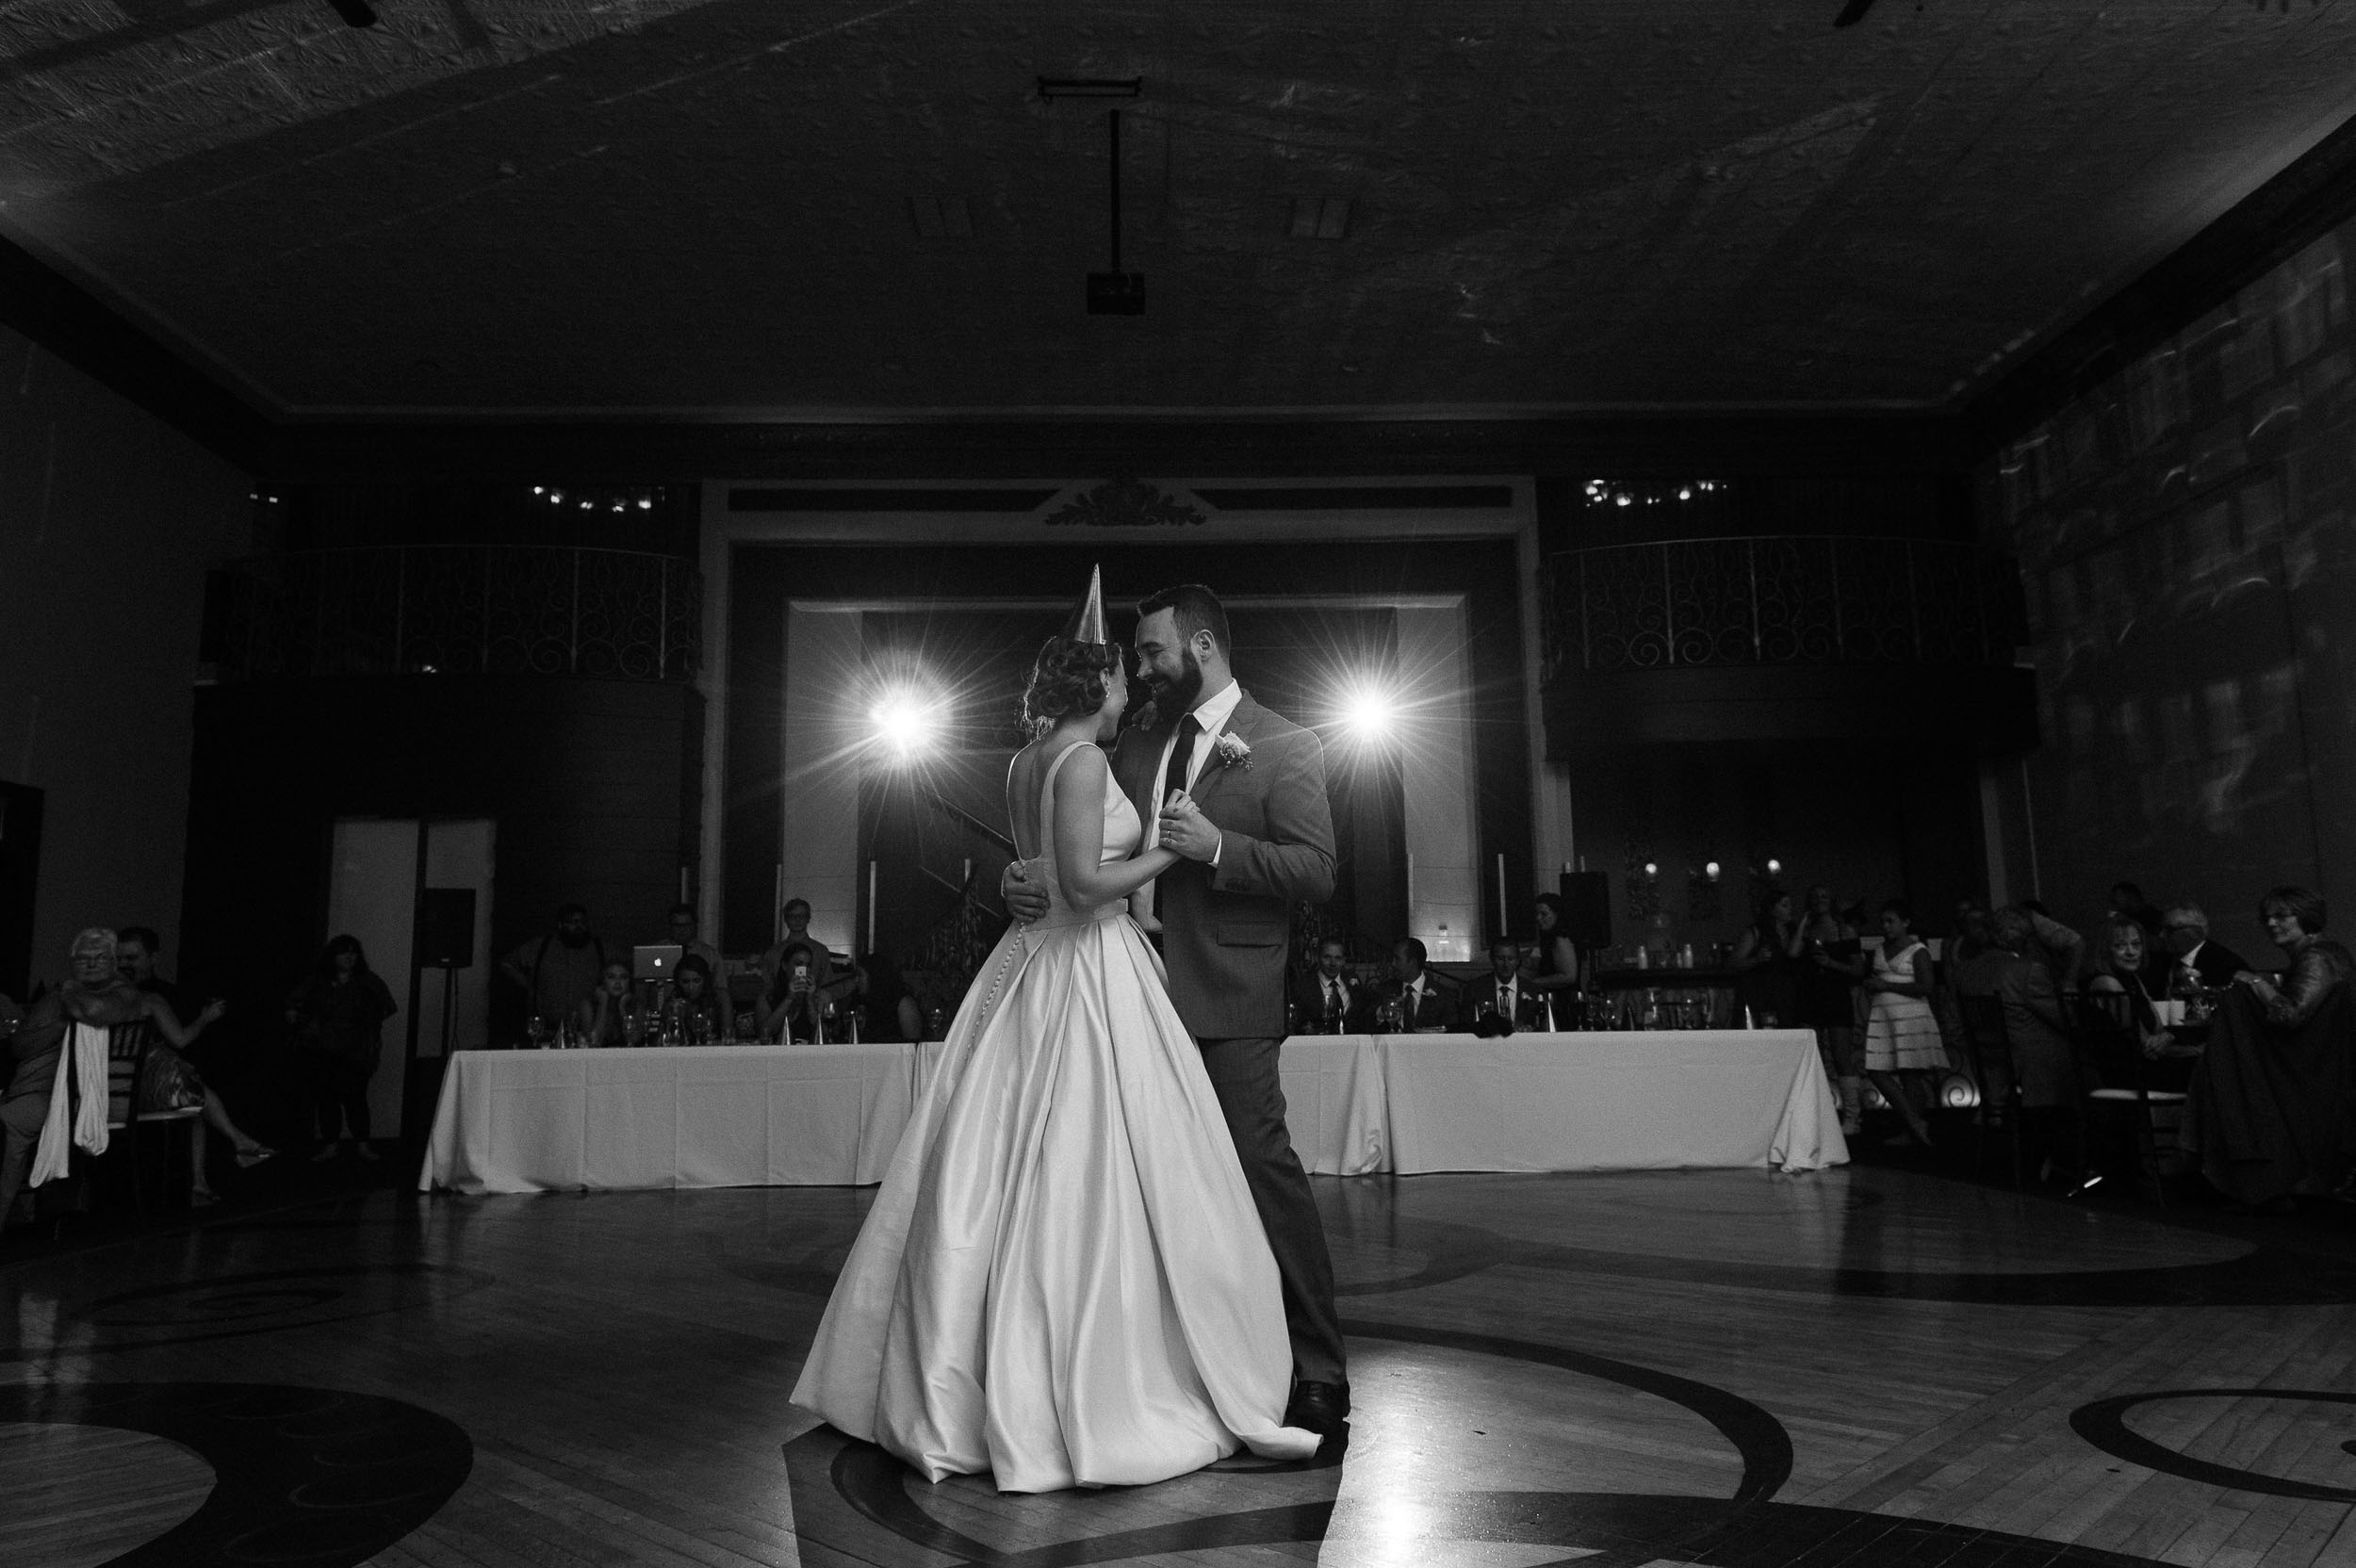 EVENT ENHANCEMENTS - We offer several options additional options for your special day.  With our Uplighting, Concert-style Lighting, Custom Monogram, Dinner on Vinyl or our Instagram Printing Station, your guests will walk away talking about their experience at your wedding for years to come!